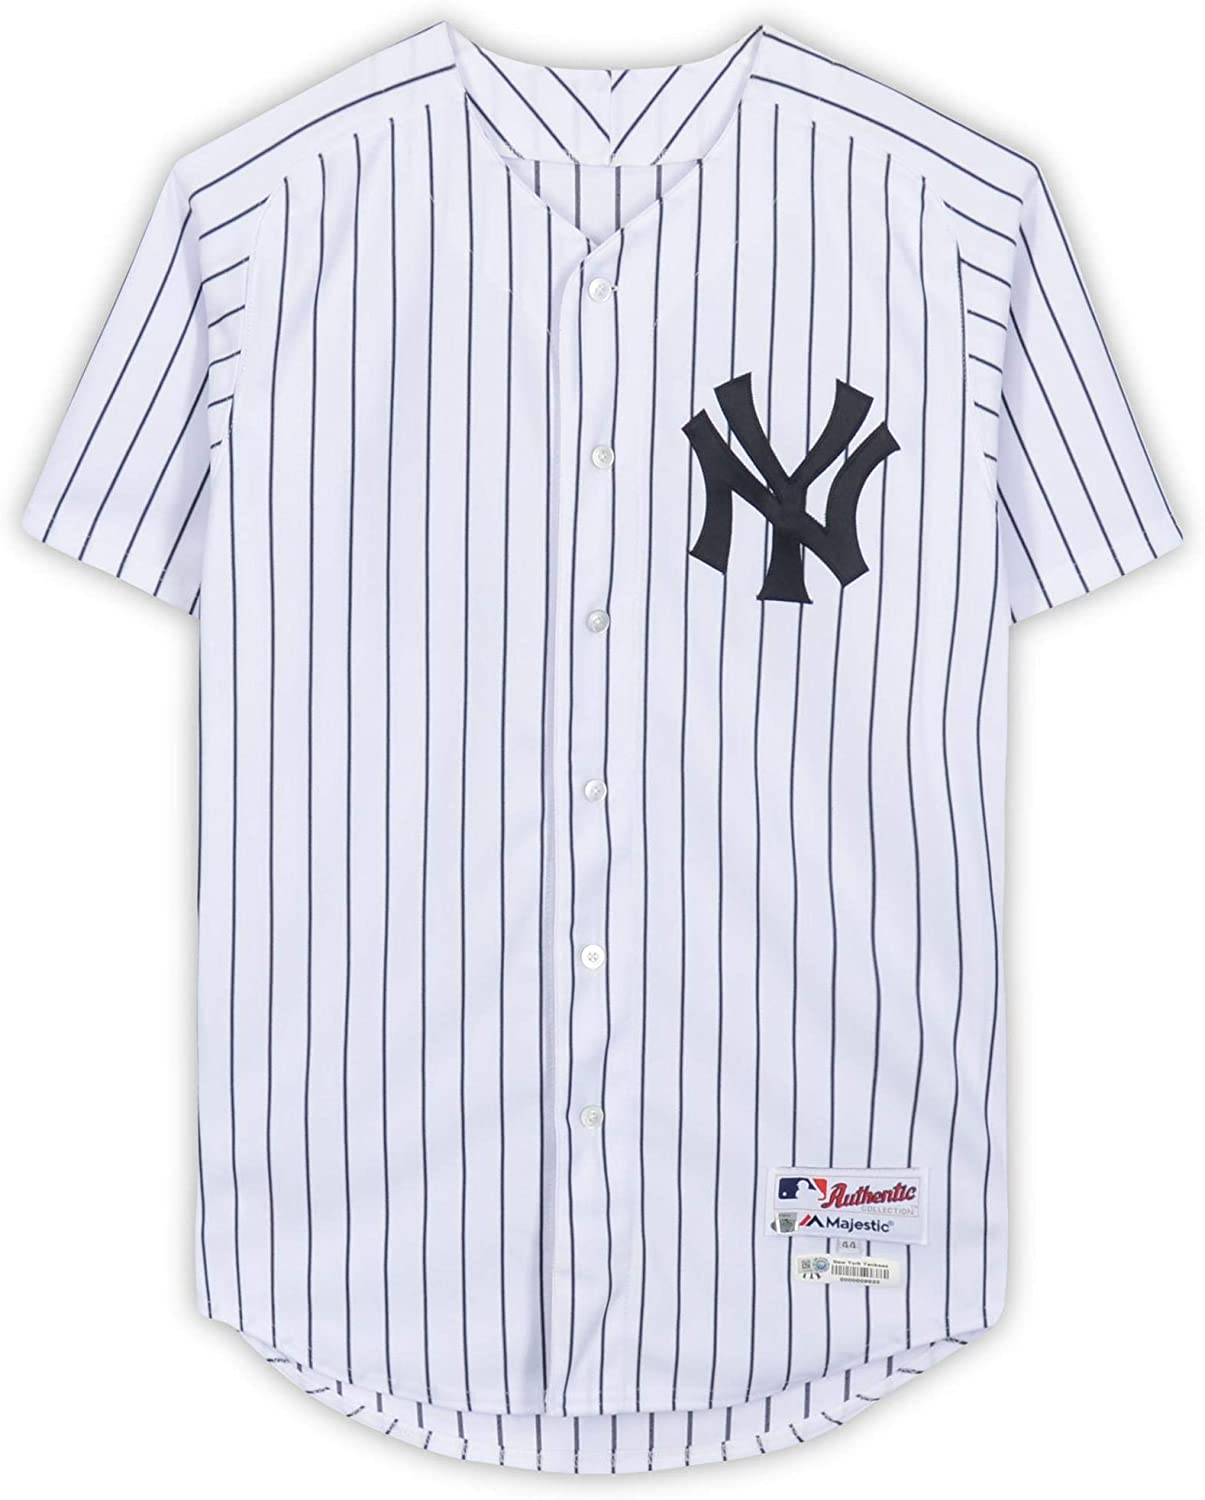 David Robertson New York Yankees Game-Used #30 White Pinstripe Jersey vs. Baltimore Orioles on September 23, 2018 - DNP - Fanatics Authentic Certified